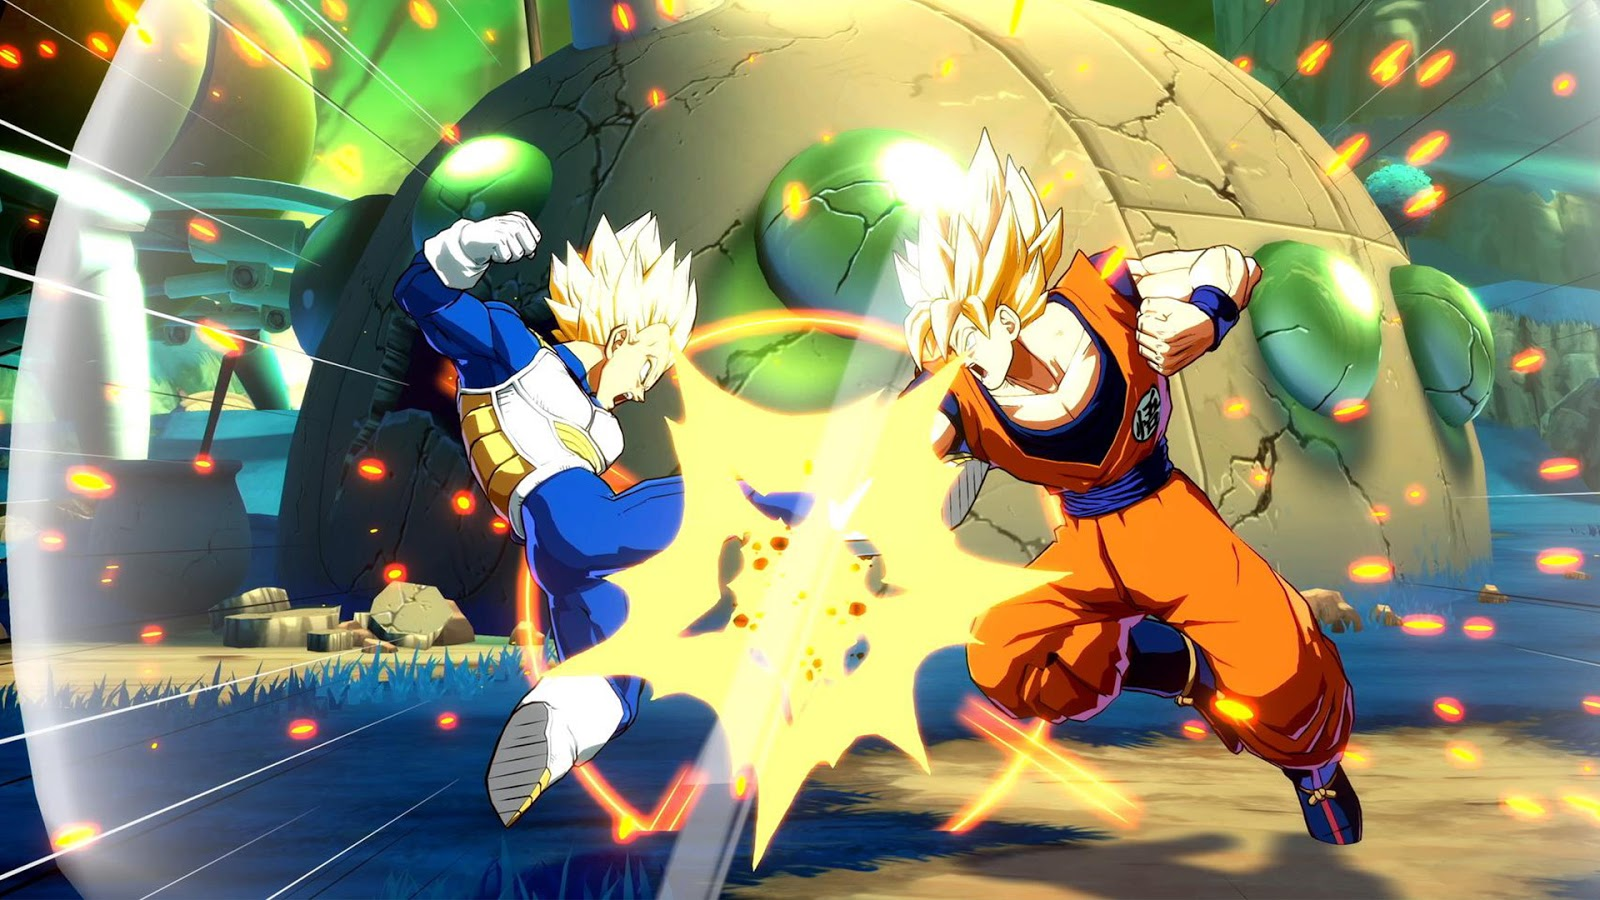 Confirmada fecha y personajes de la beta cerrada de Dragon Ball Fighter Z